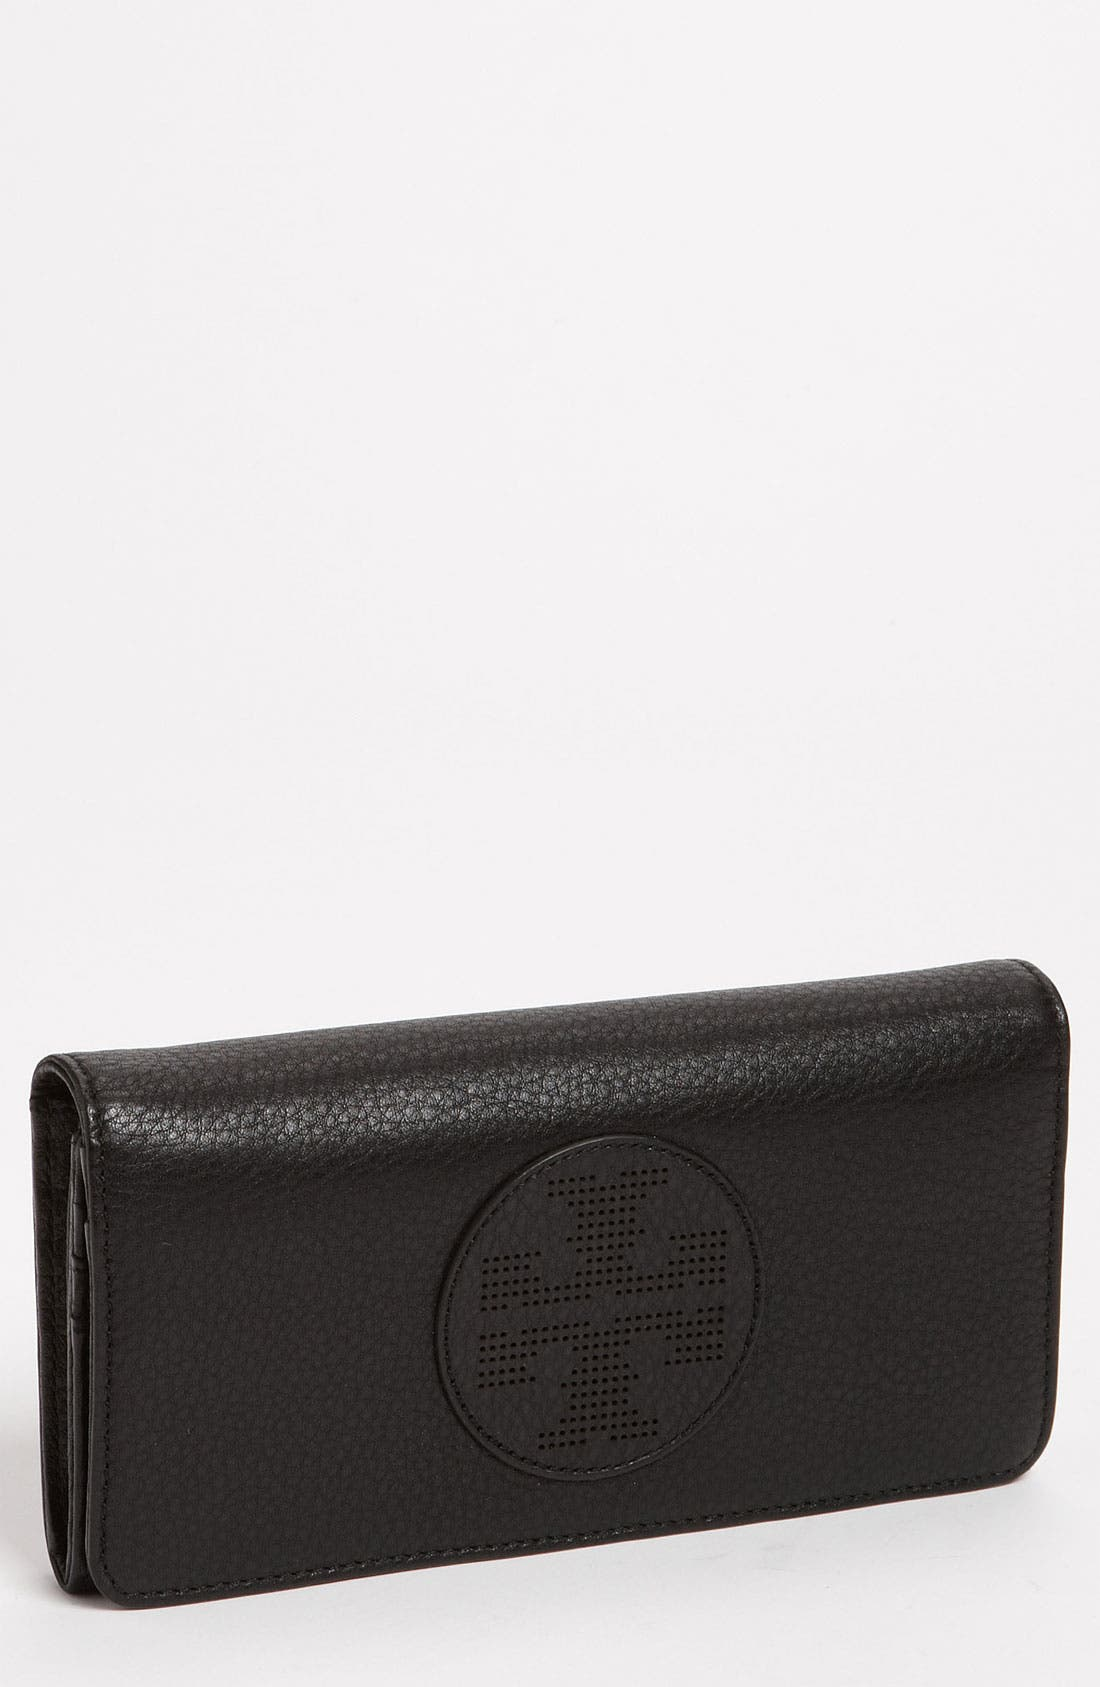 Alternate Image 1 Selected - Tory Burch 'Kipp' Envelope Wallet